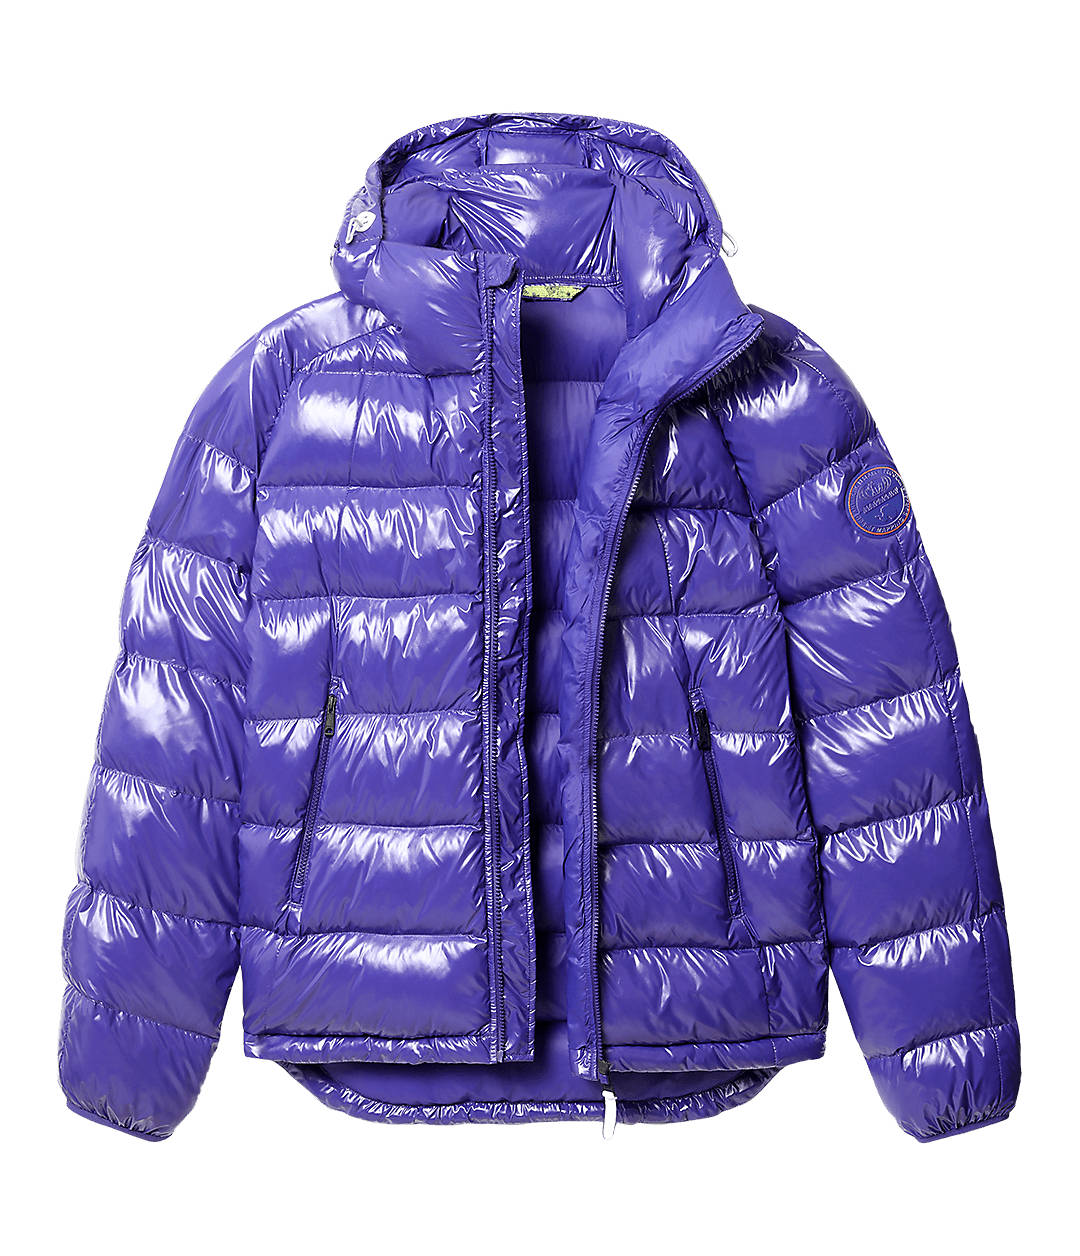 Puffer jacket Art Shiny